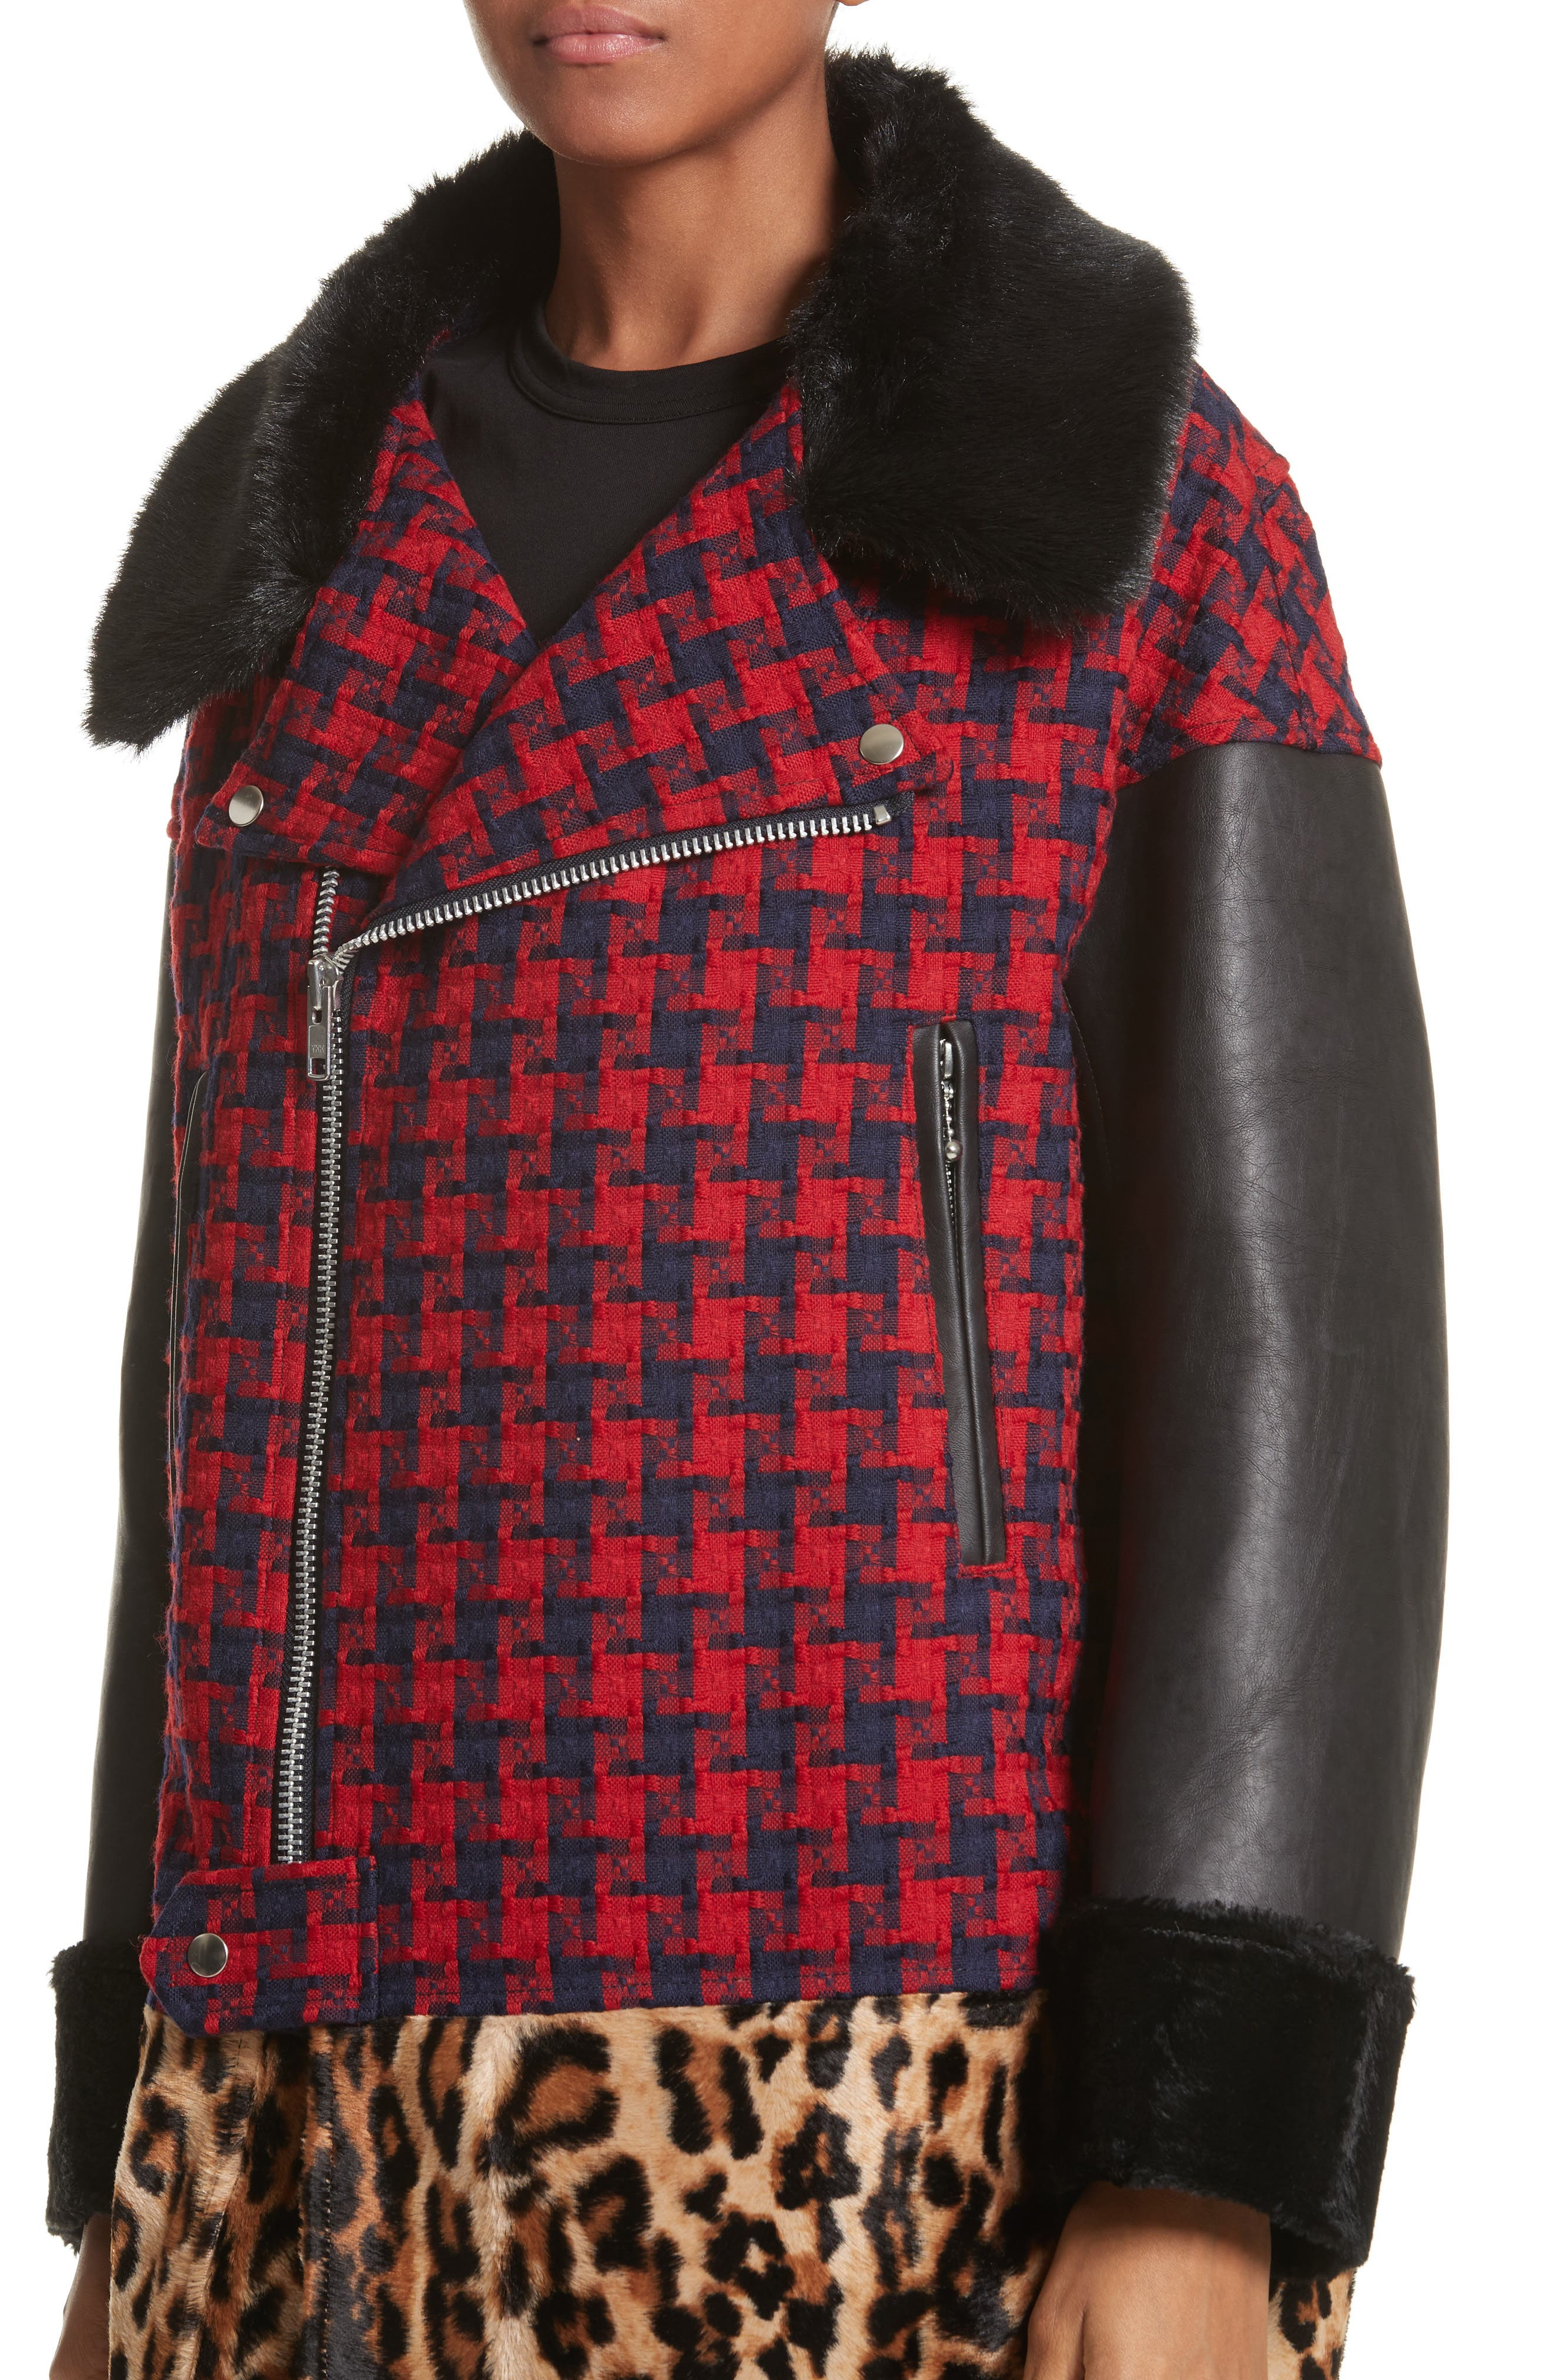 Buffalo Check Moto Jacket with Faux Fur Trim,                             Alternate thumbnail 4, color,                             Red/Nvy X Bge/Brn